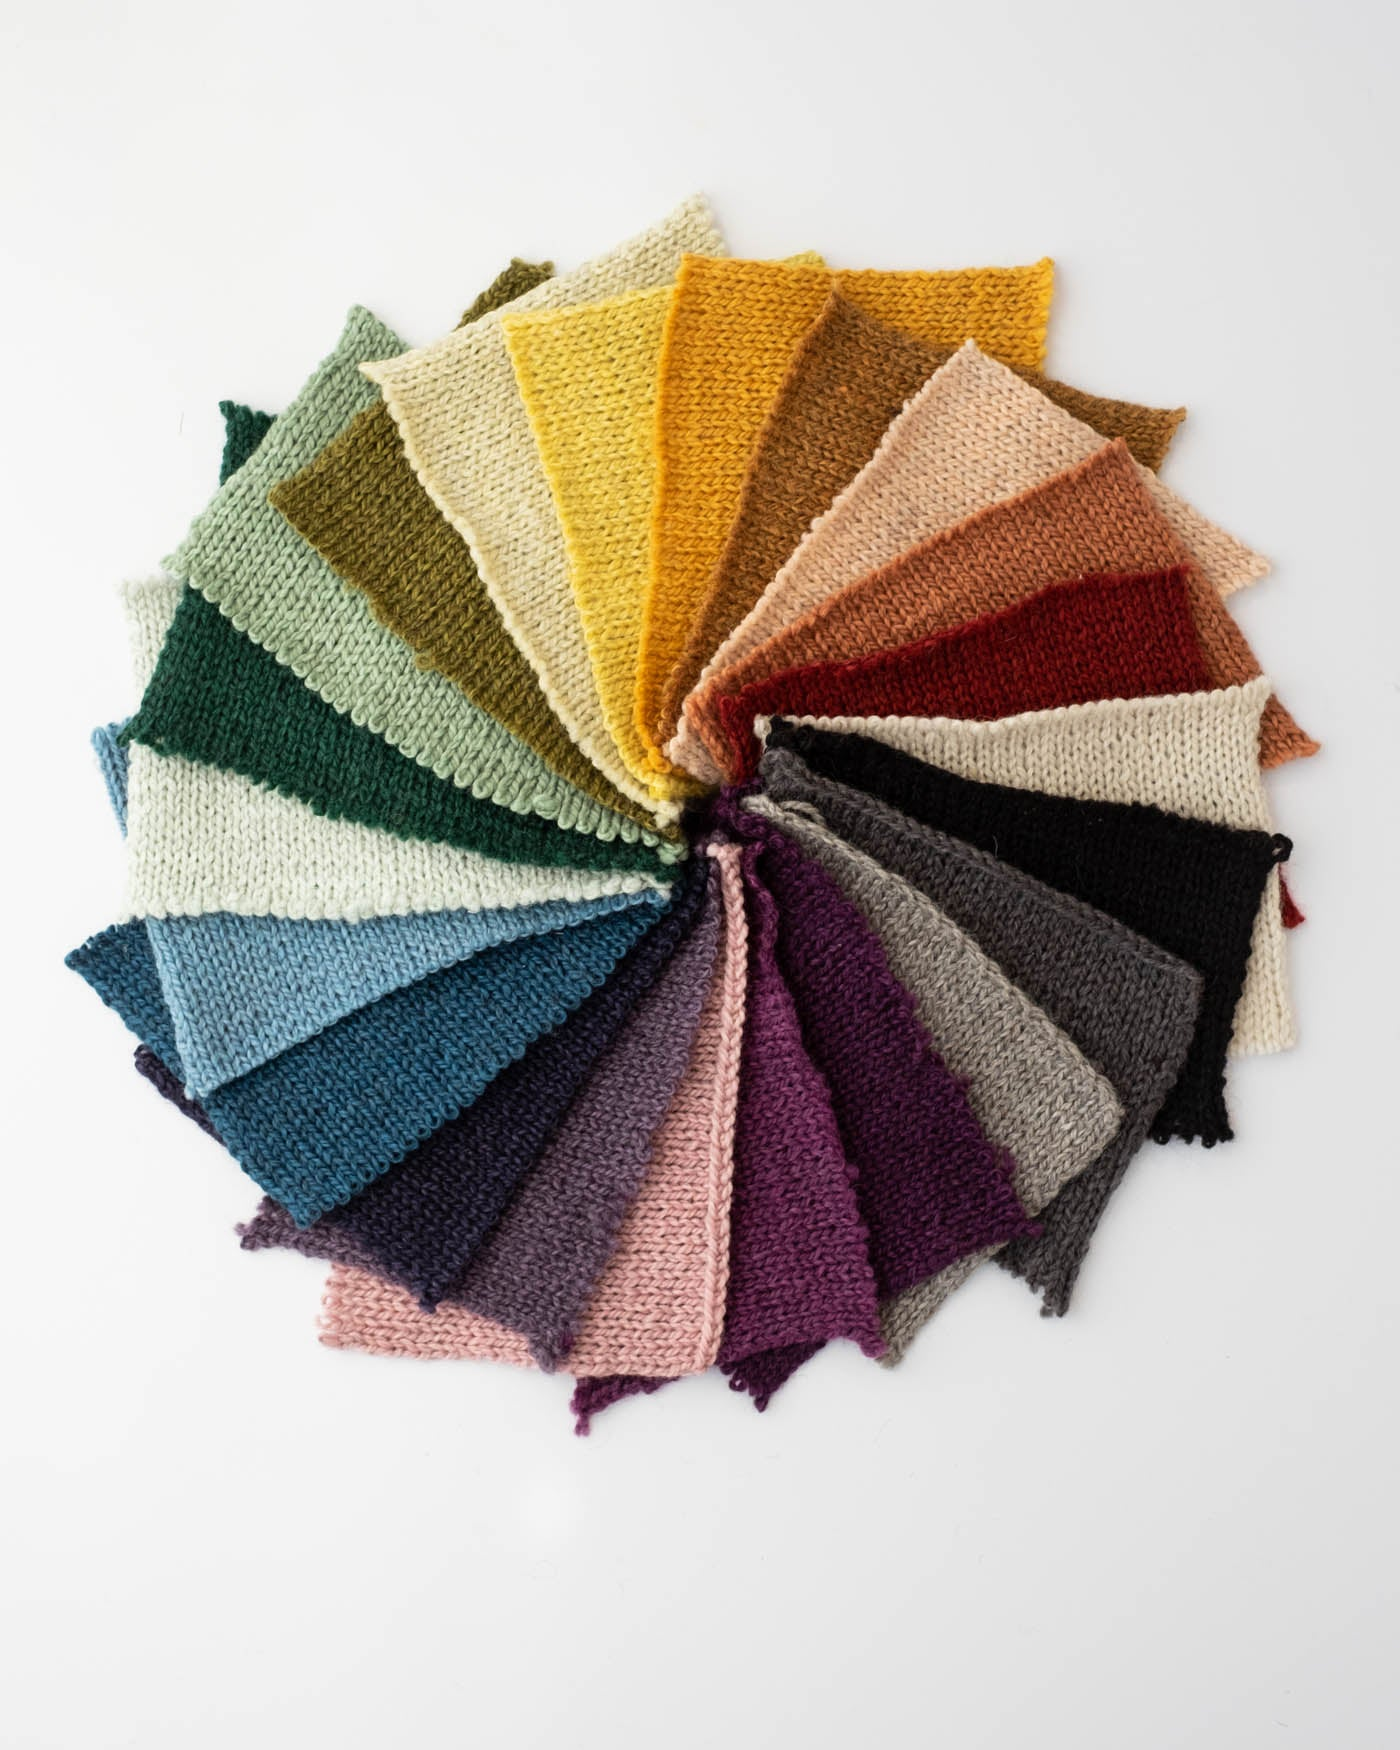 Rectangular knit swatches in the color of the rainbow in a circle to show all 22 colors.